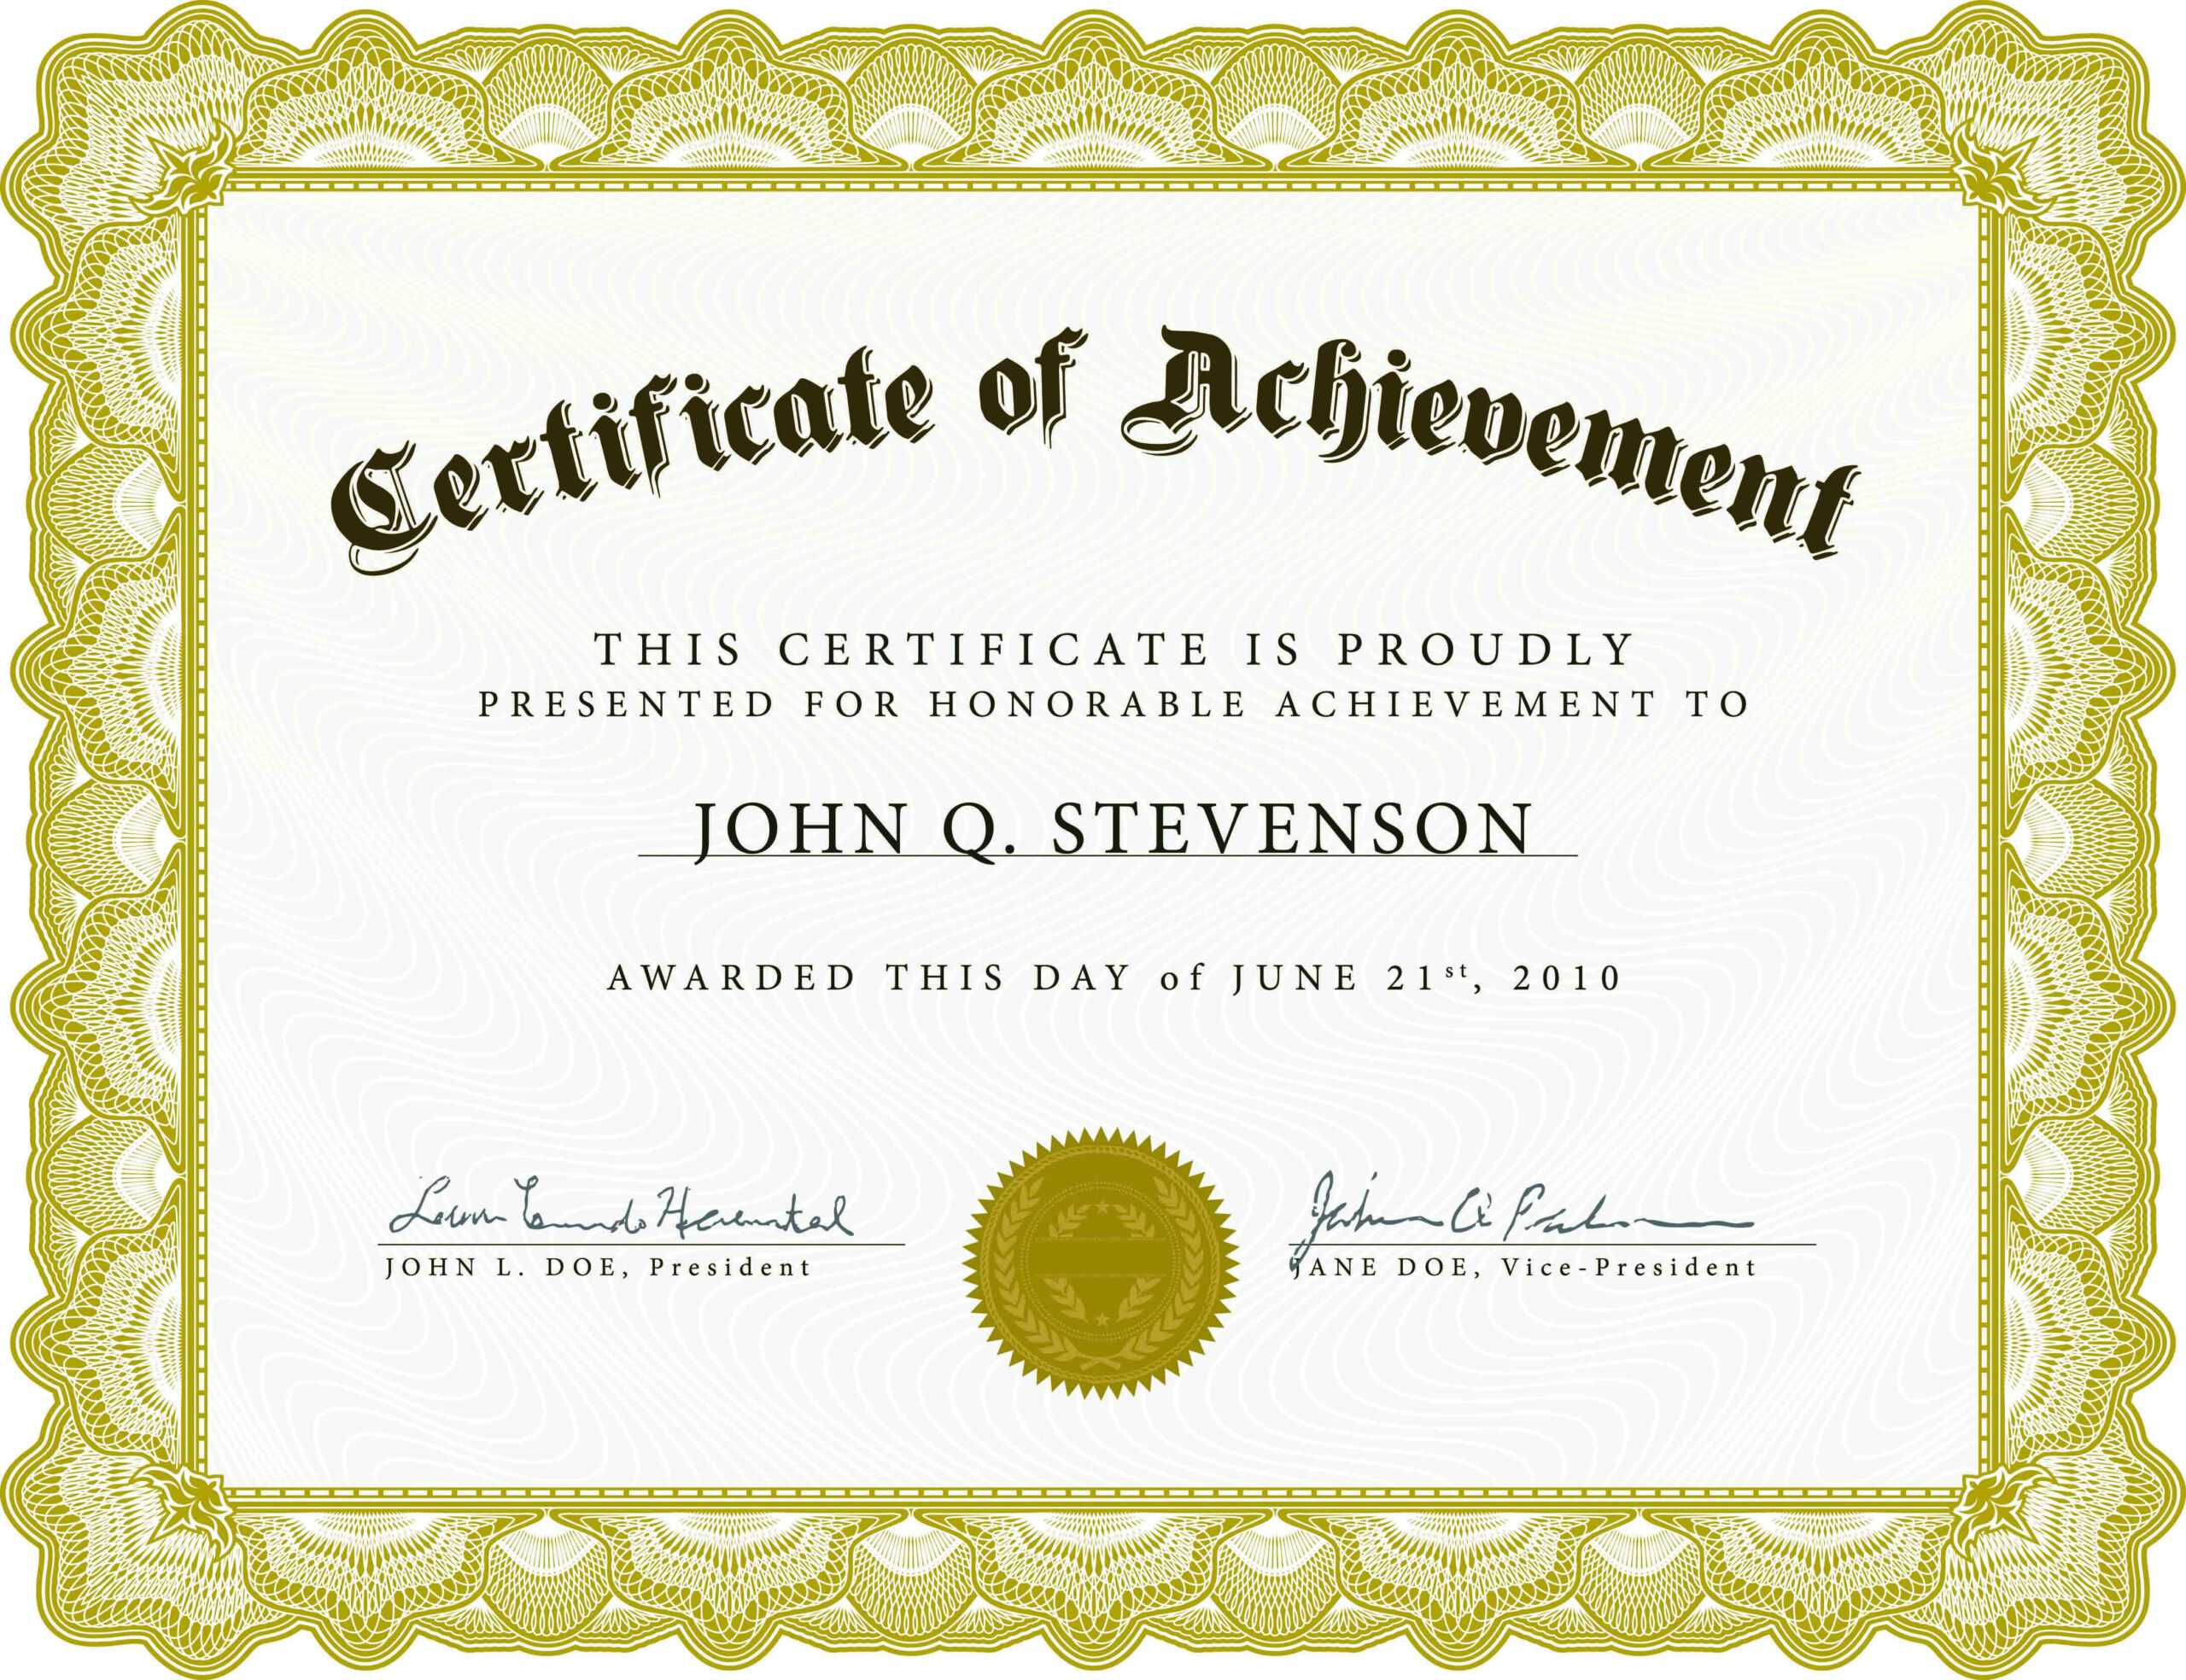 003 Army Certificate Of Achievement Template Microsoft Word With Regard To Certificate Of Achievement Army Template